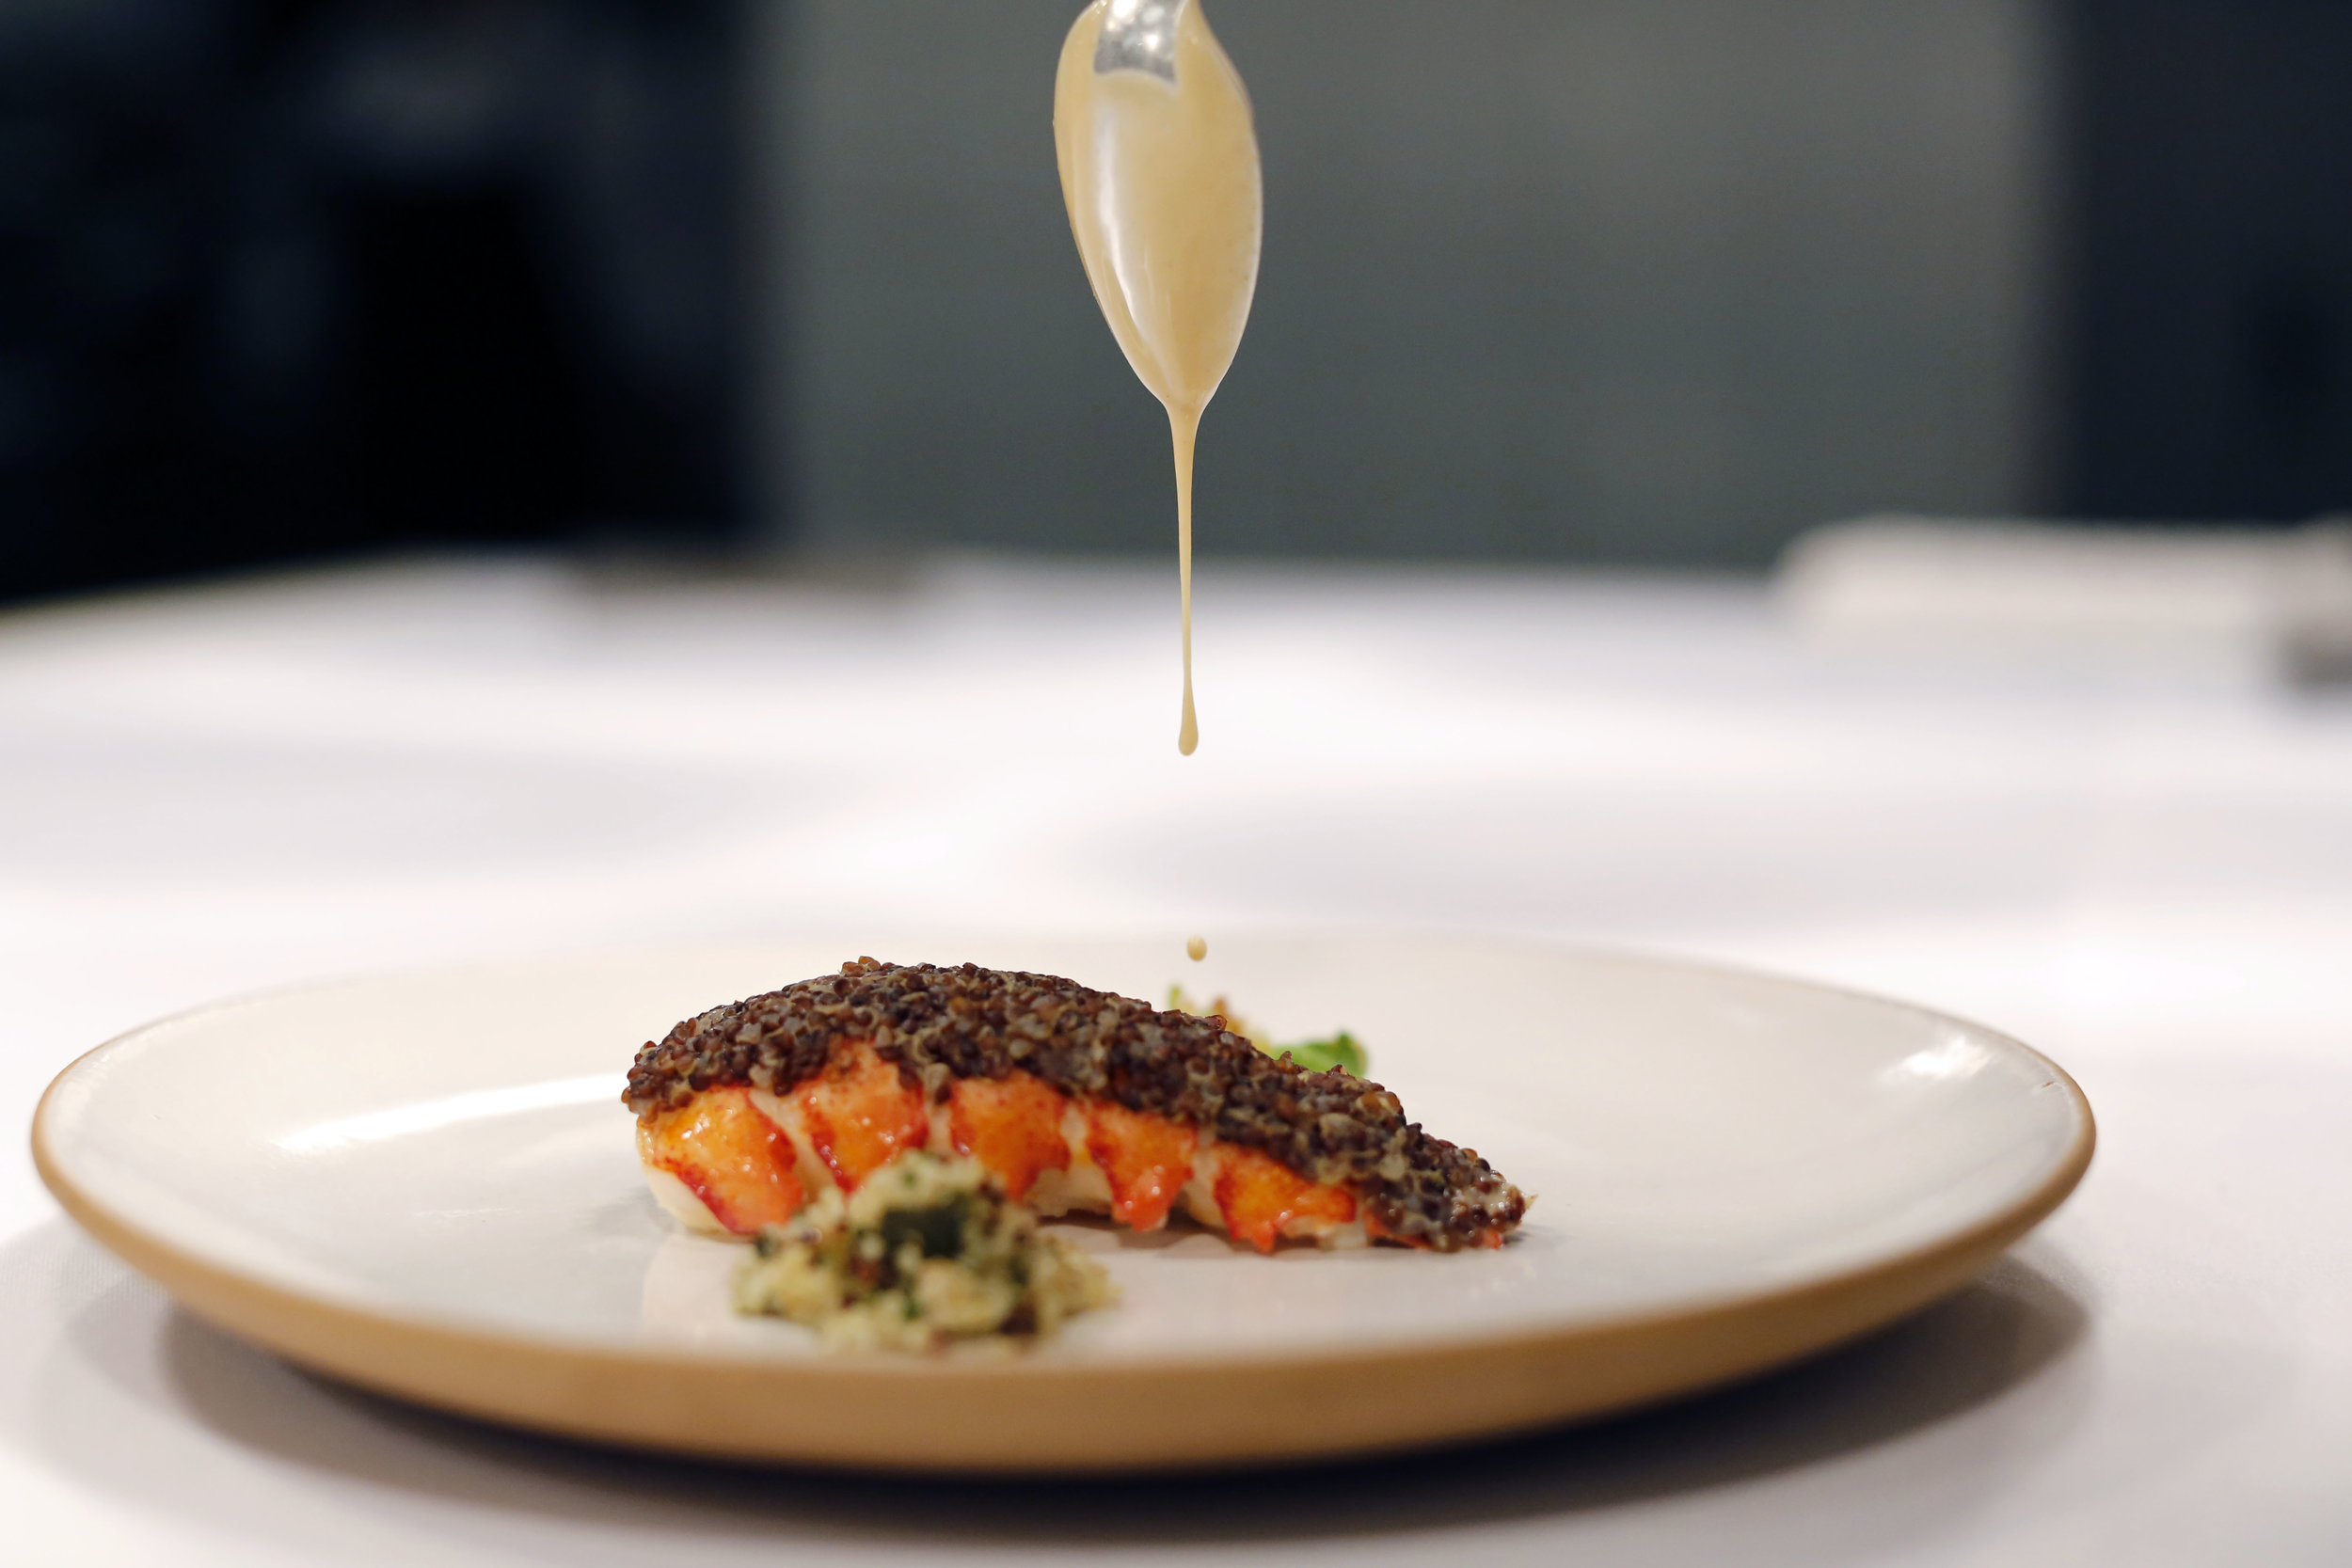 Food prepared by Chefs Daniel Humm and Ferran Adria at Eleven Madison Park, Fall 2014.